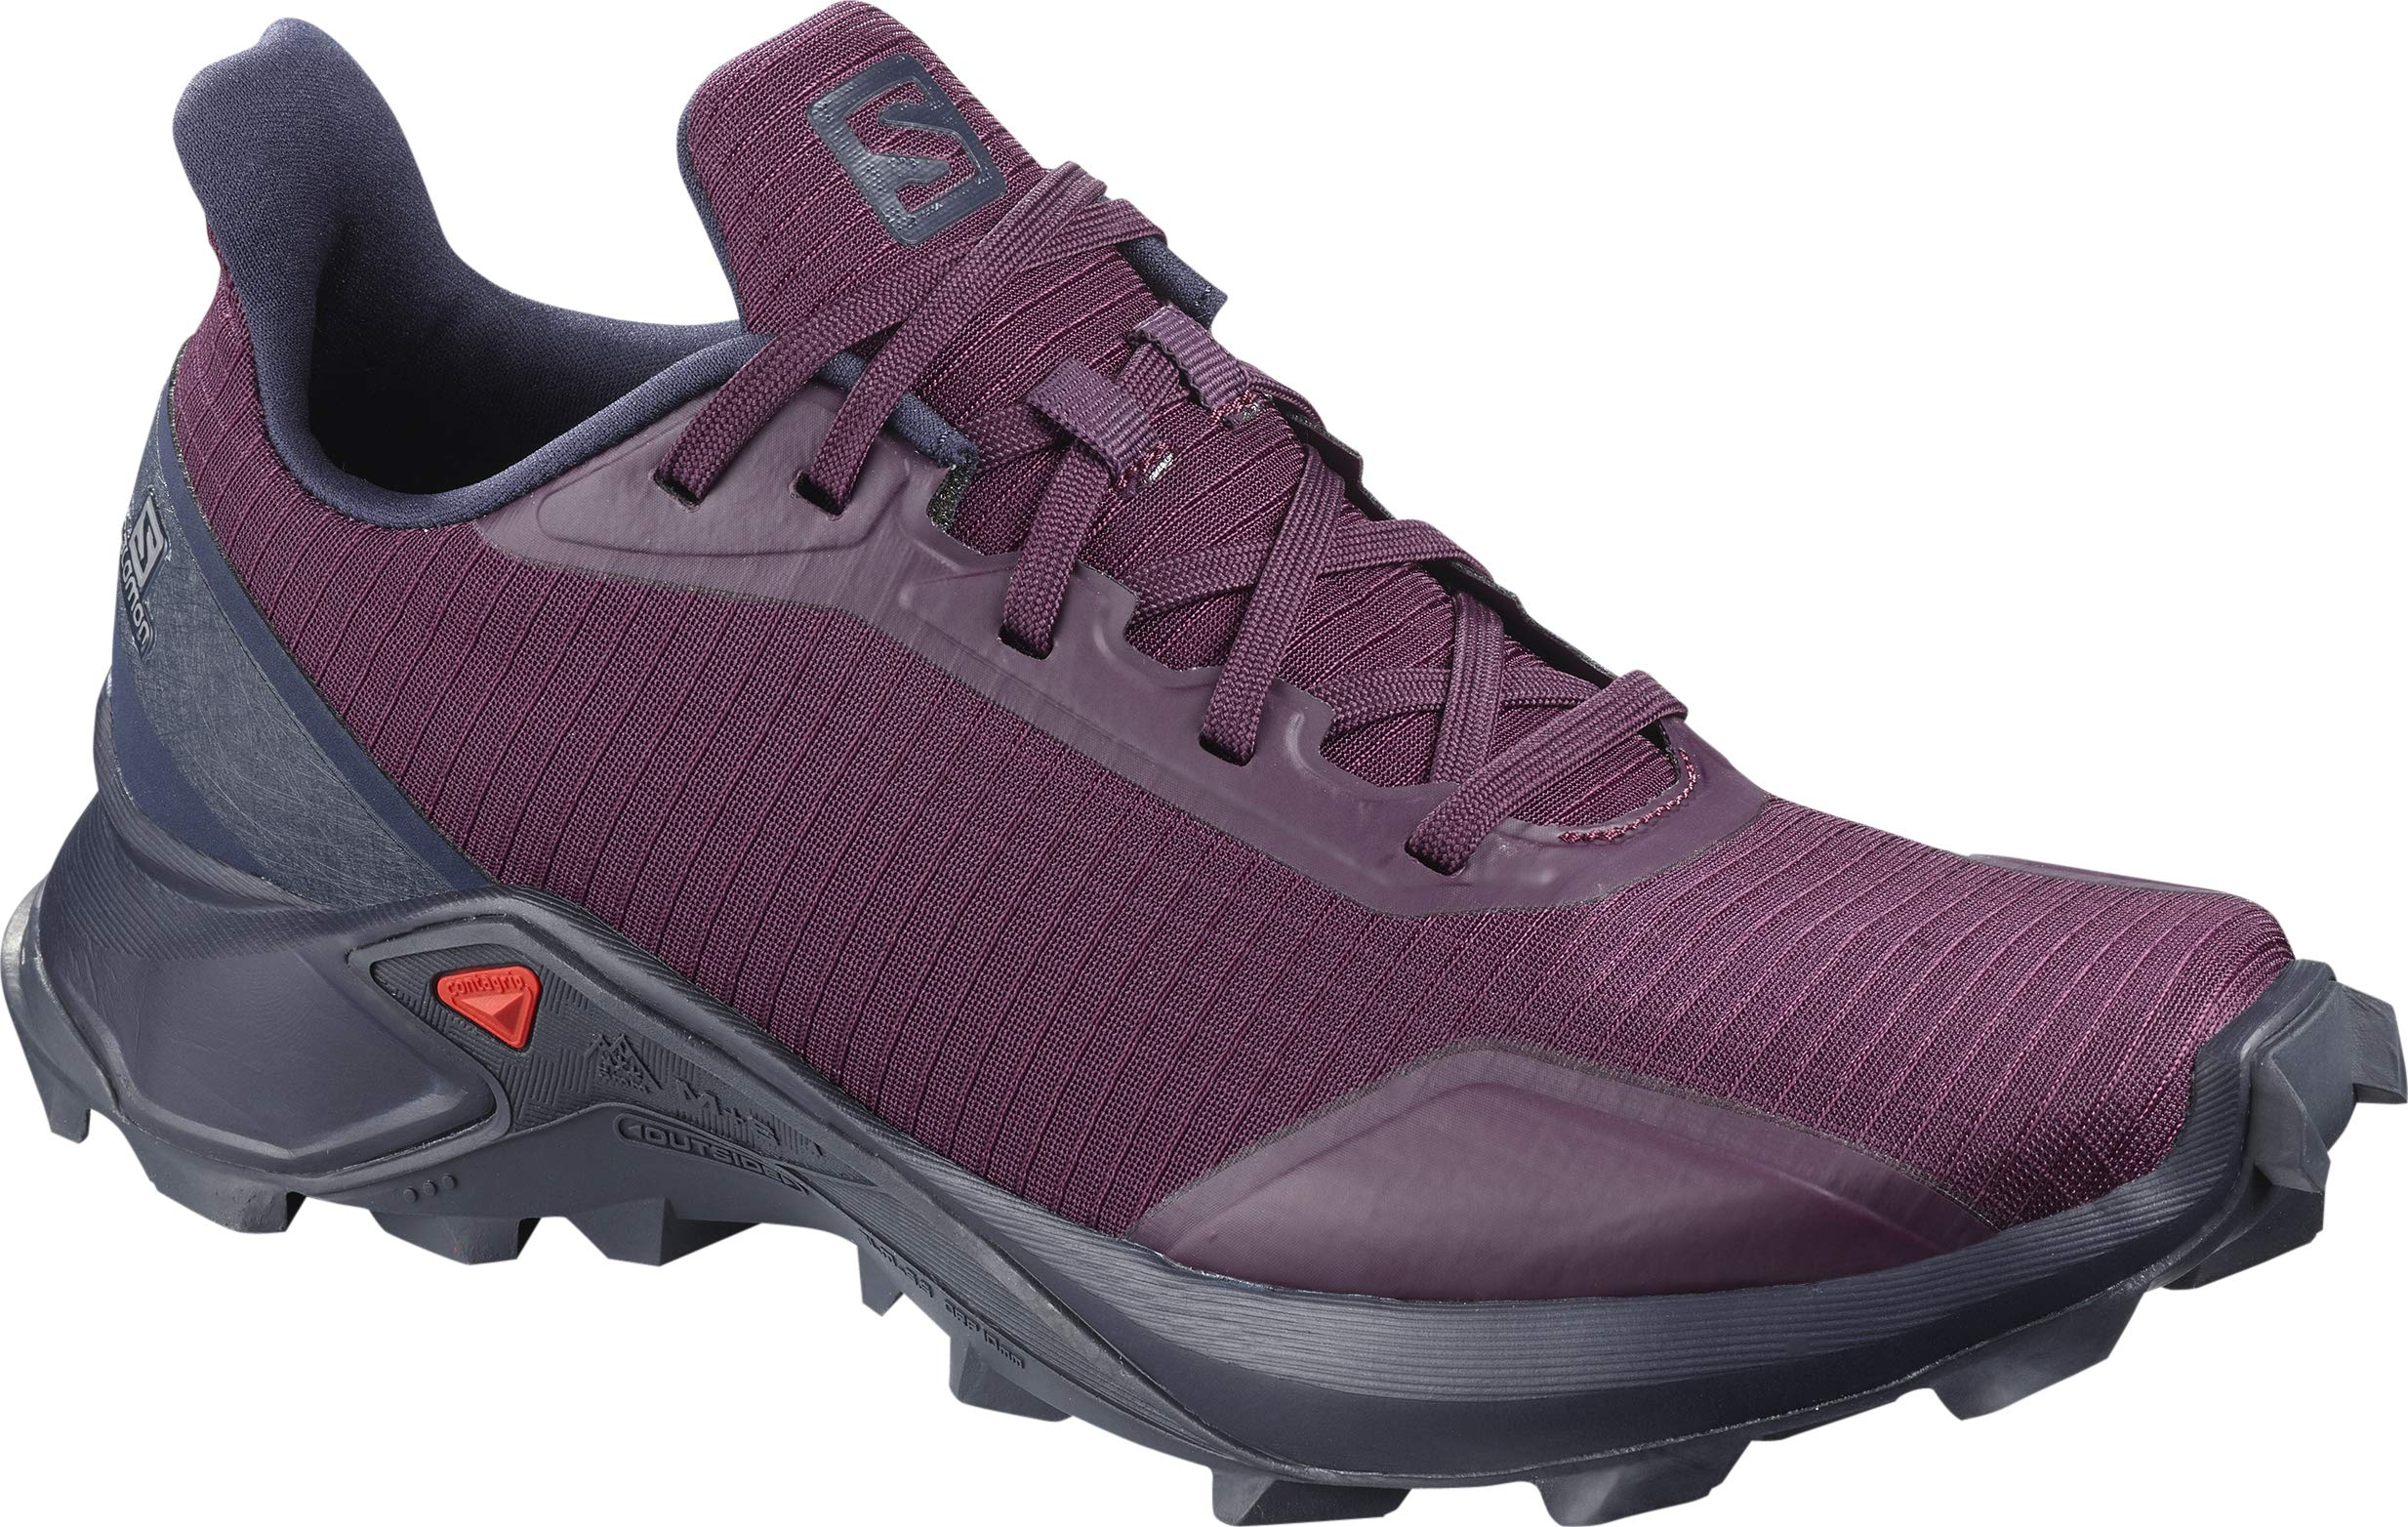 Salomon Women's Alphacross Trail Running Shoes, Potent Purple/Navy Blazer/India Ink, 6.5 by SALOMON